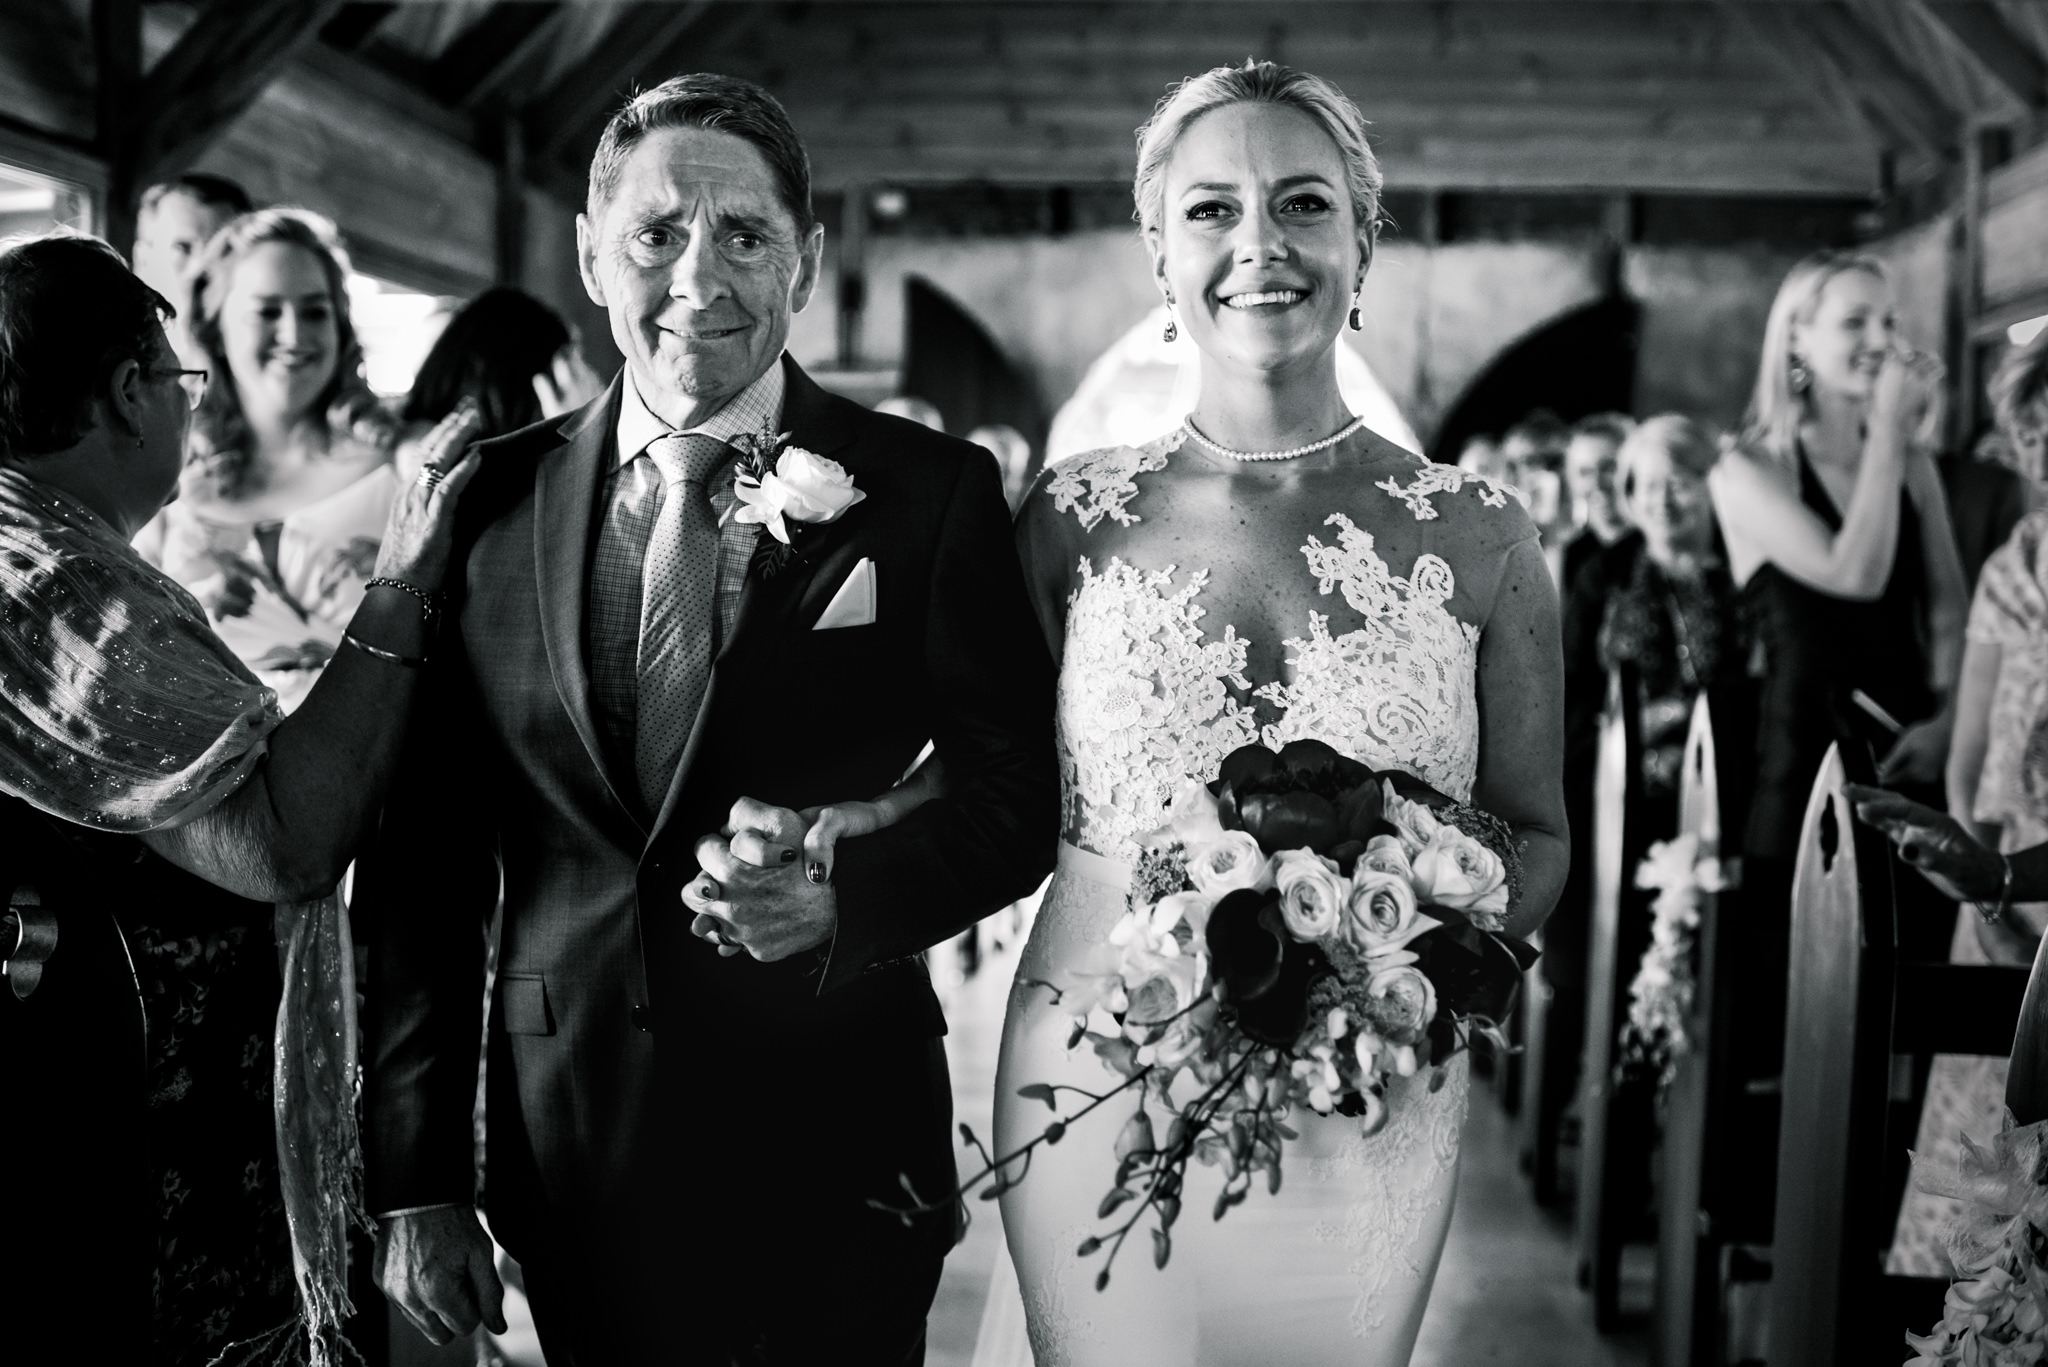 Emotional bride and father walk down aisle